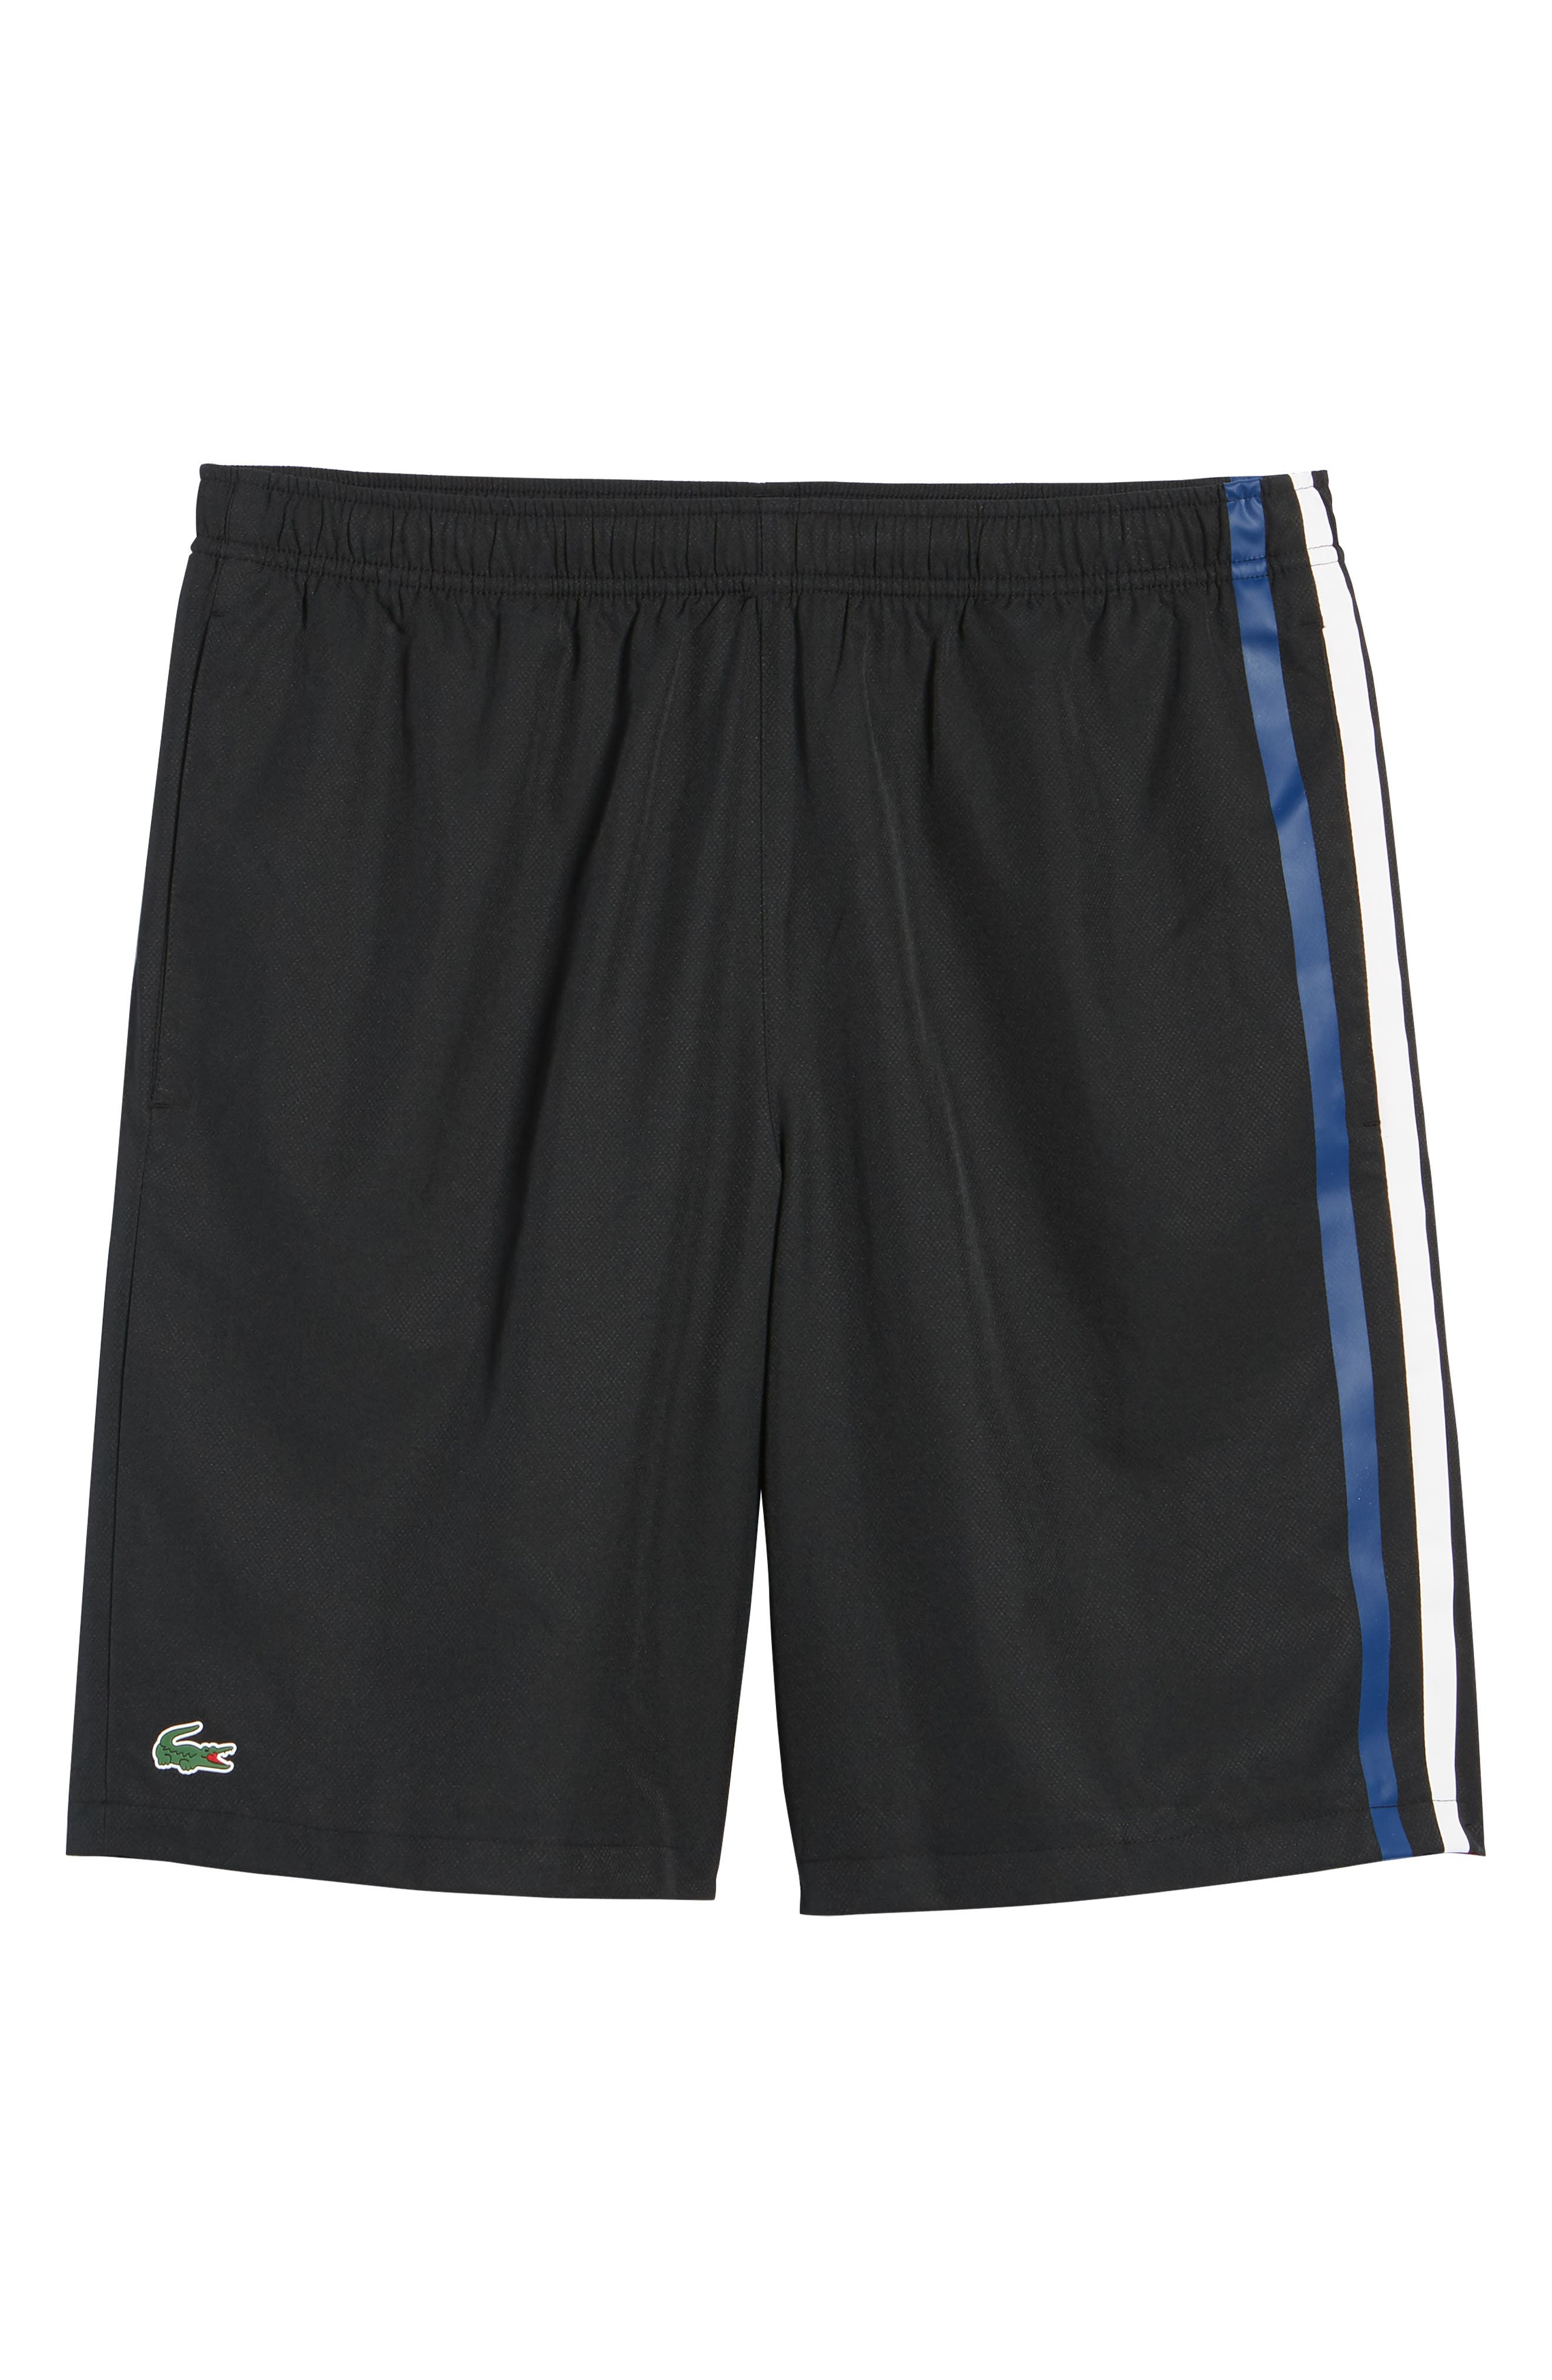 Side Stripe Shorts,                             Alternate thumbnail 6, color,                             013